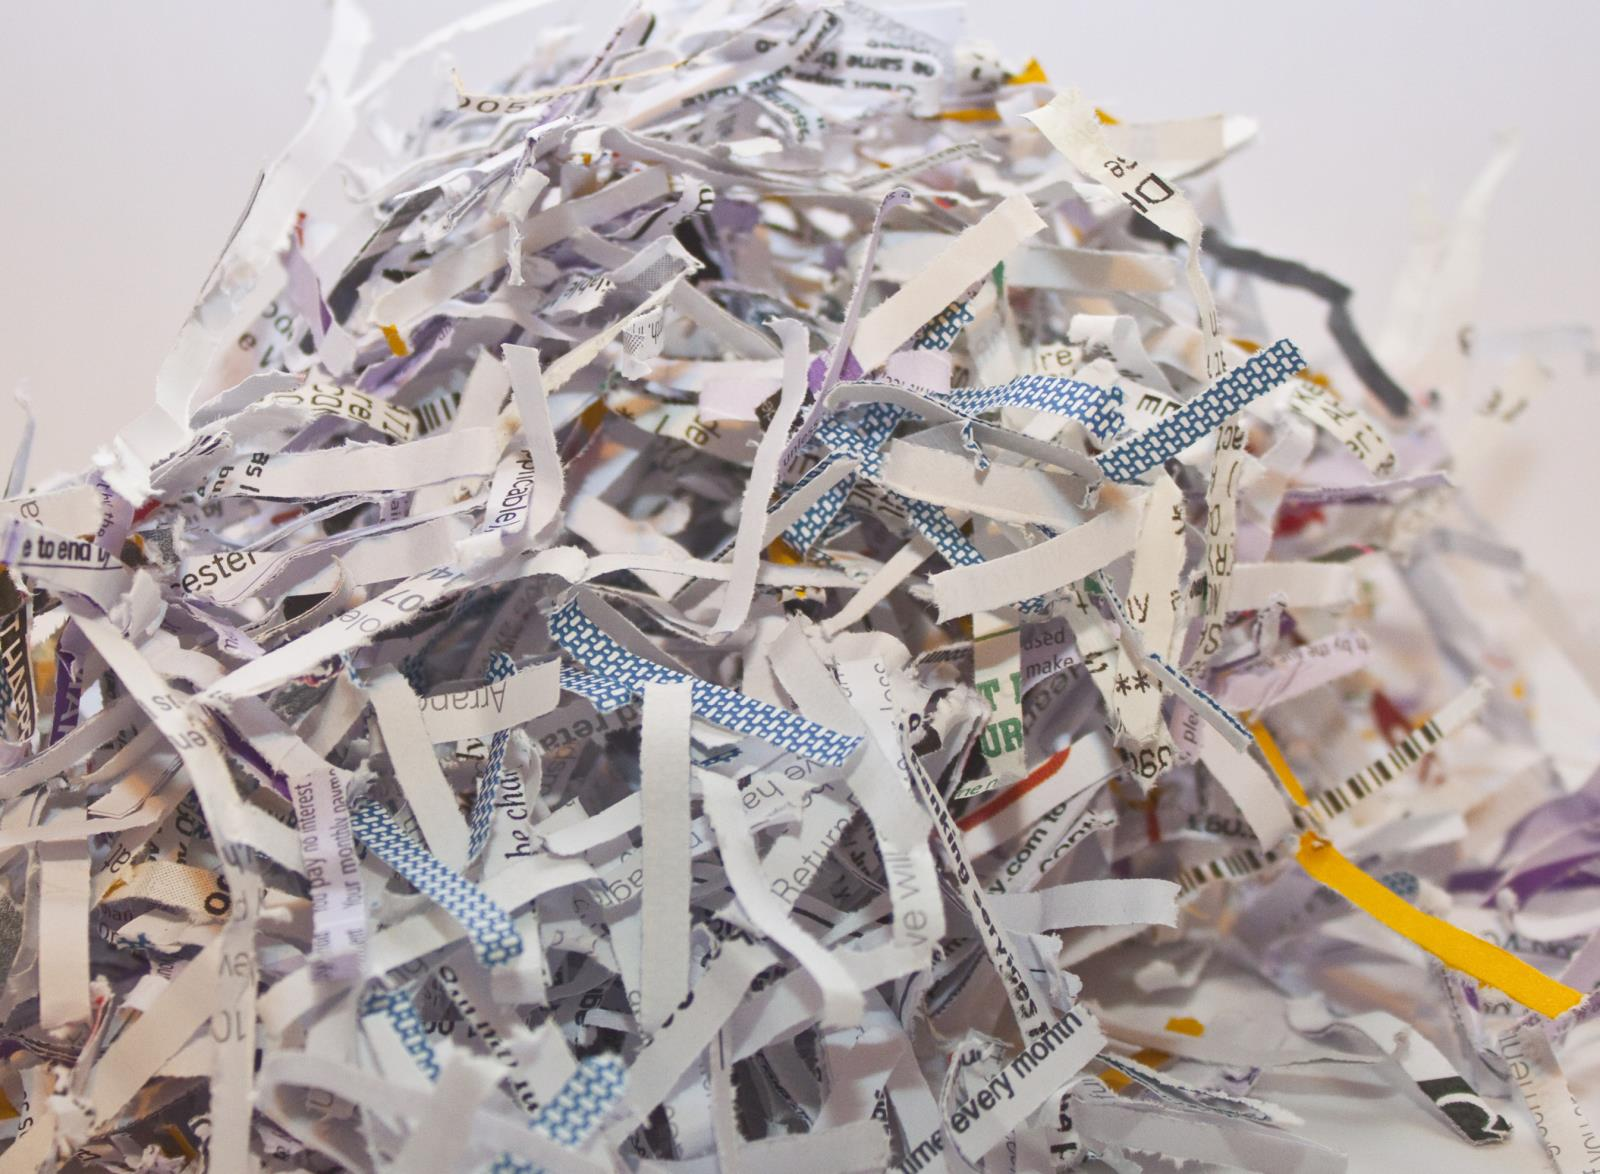 Document Shredding shutterstock_44367901